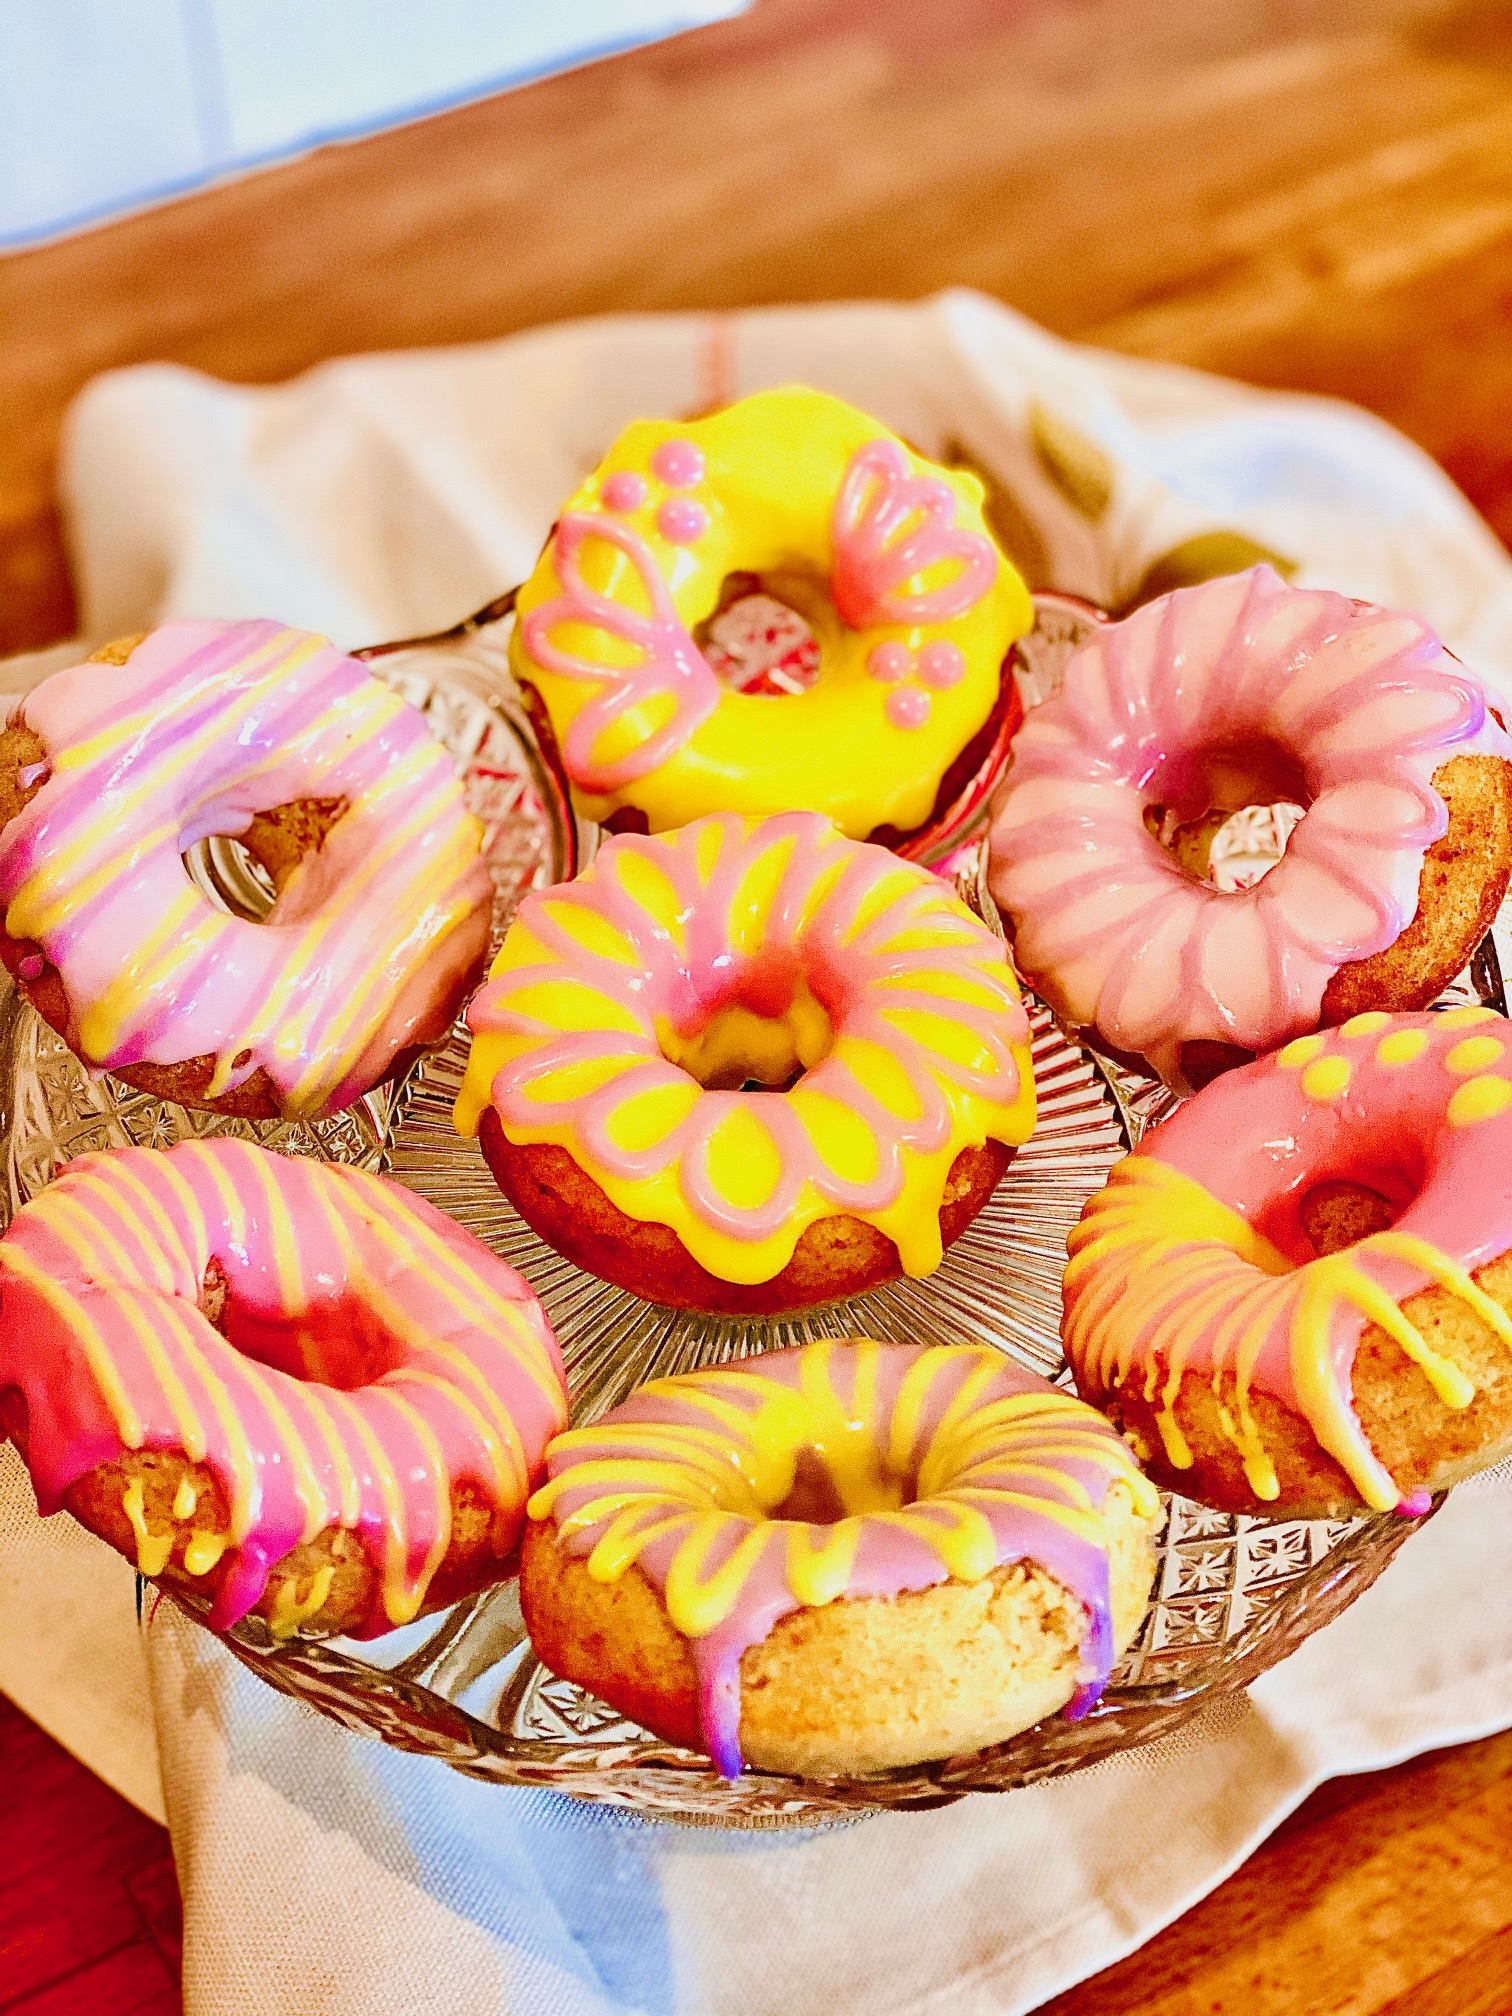 Baked doughnuts topped with coloured icing displayed on a cake stand